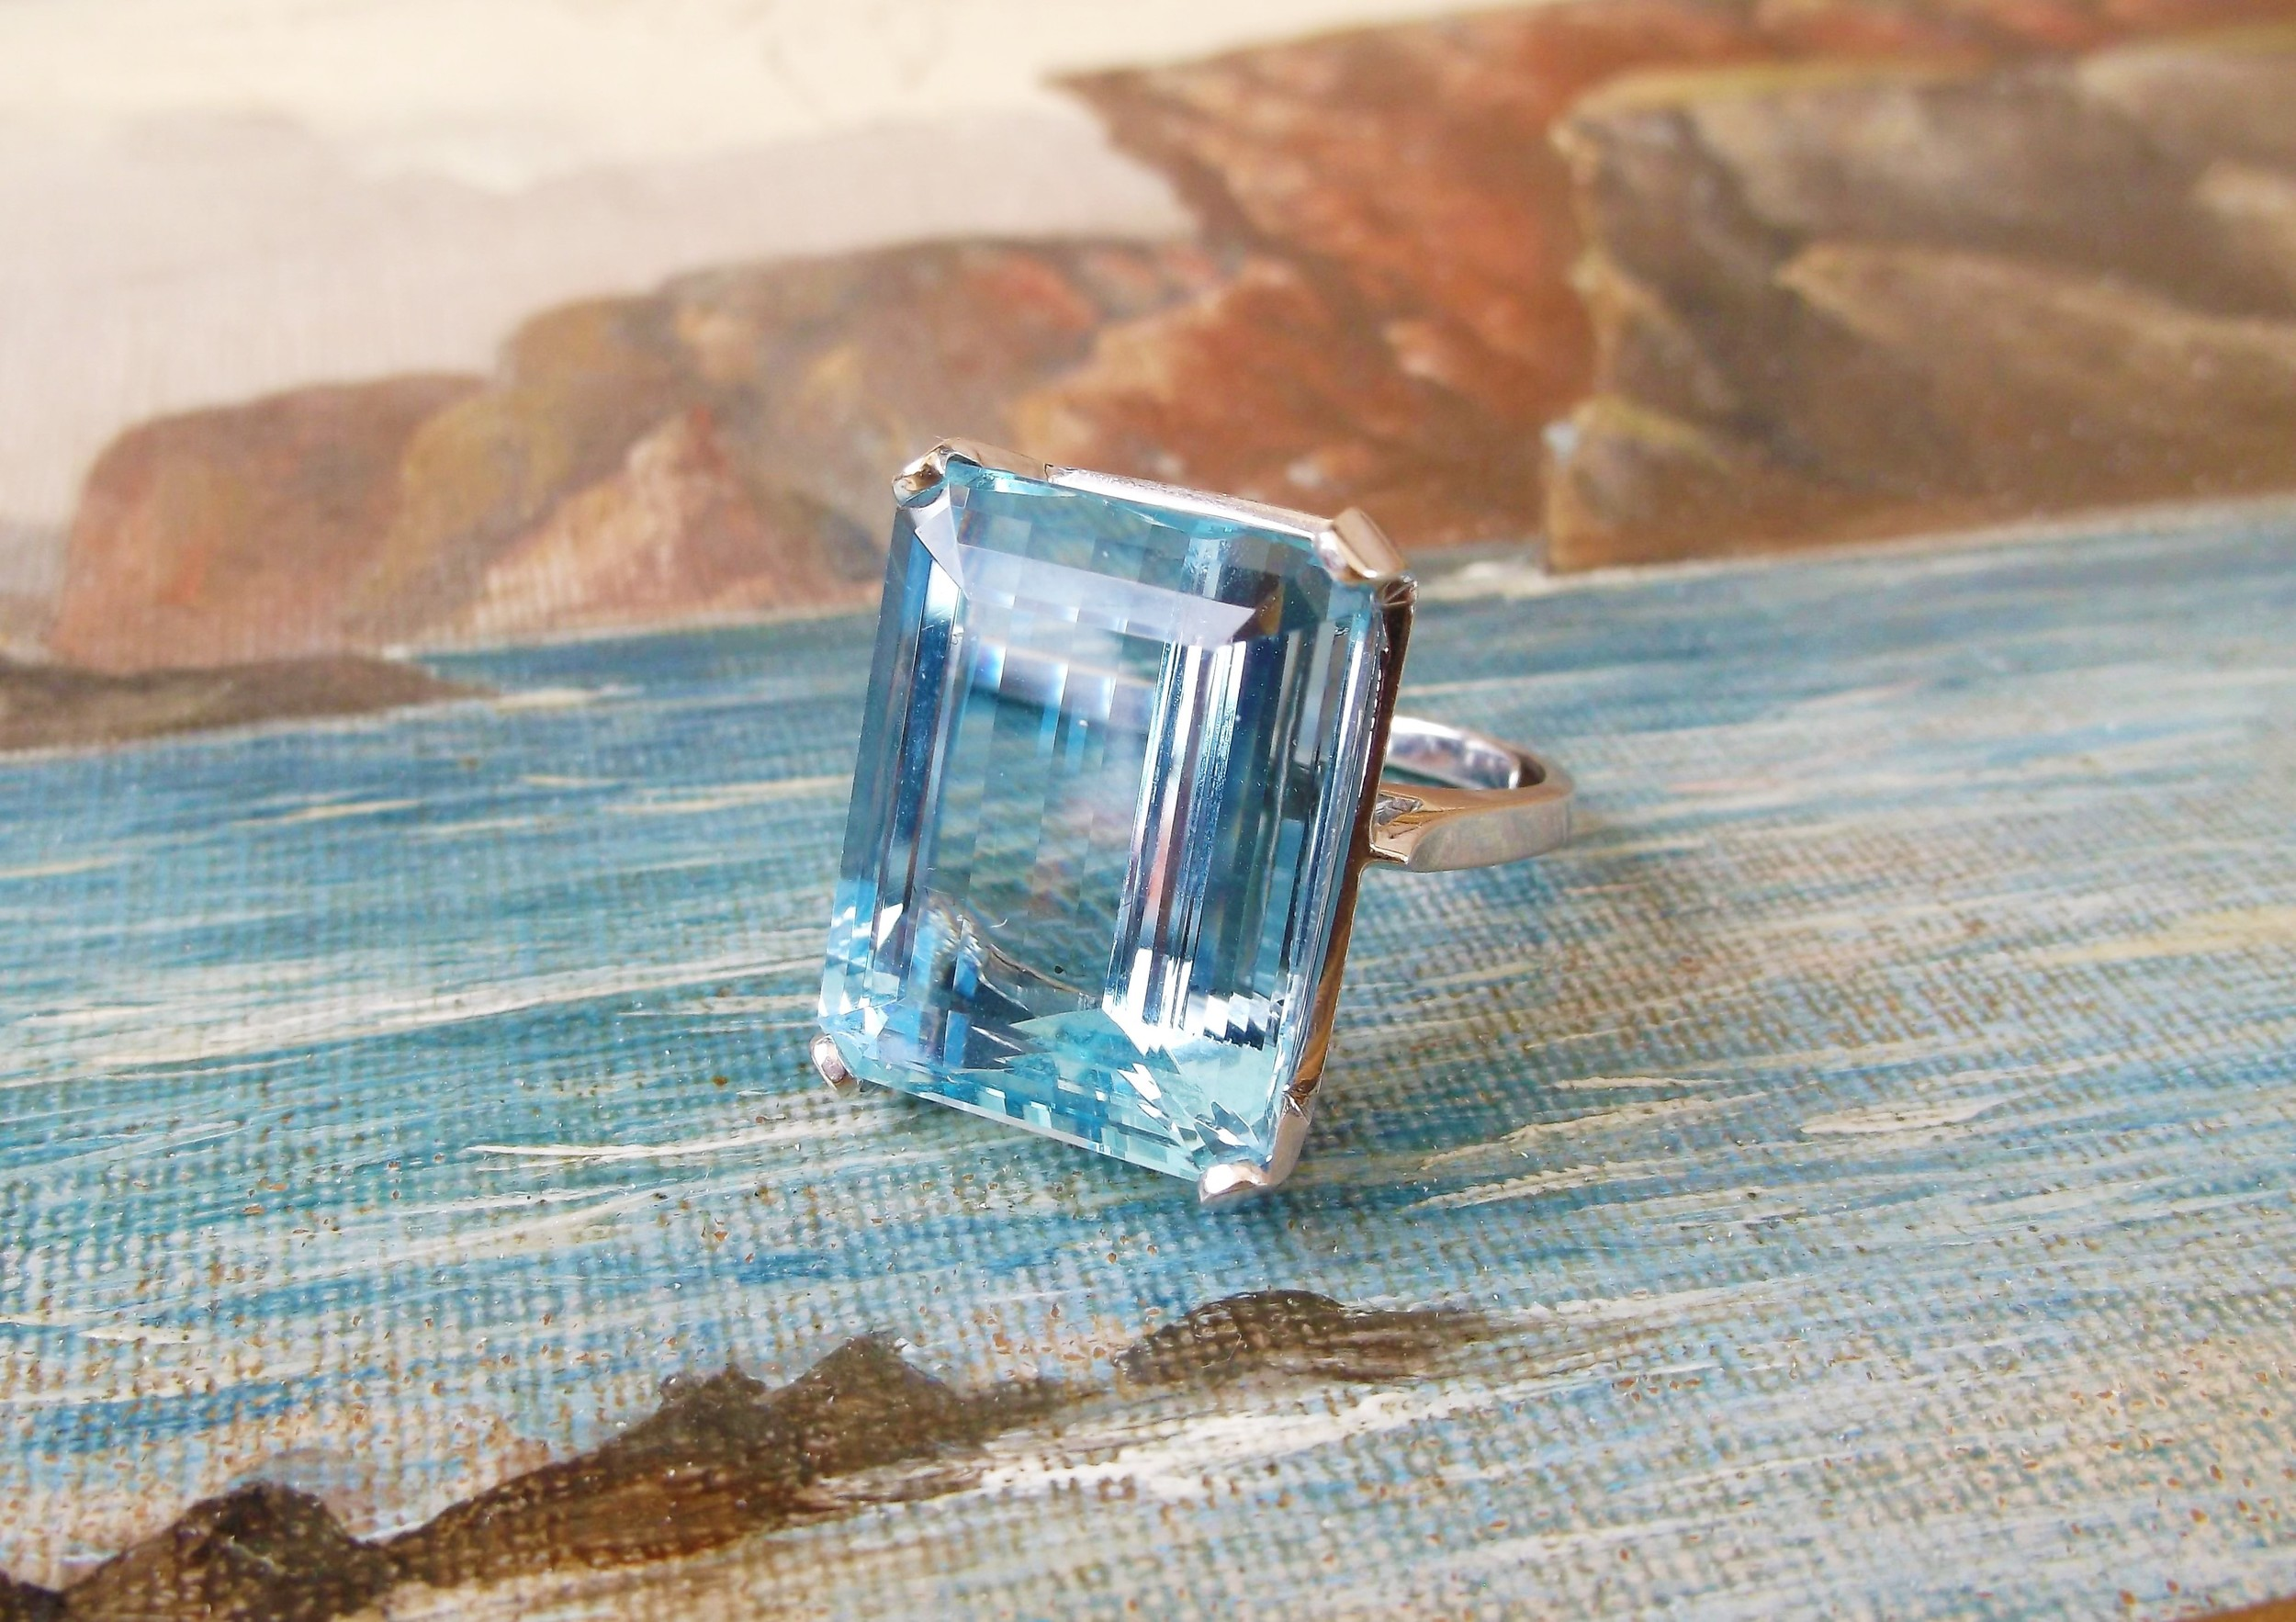 SOLD - Beautiful 24.62 carat aquamarine set in a simple 18K white gold setting.